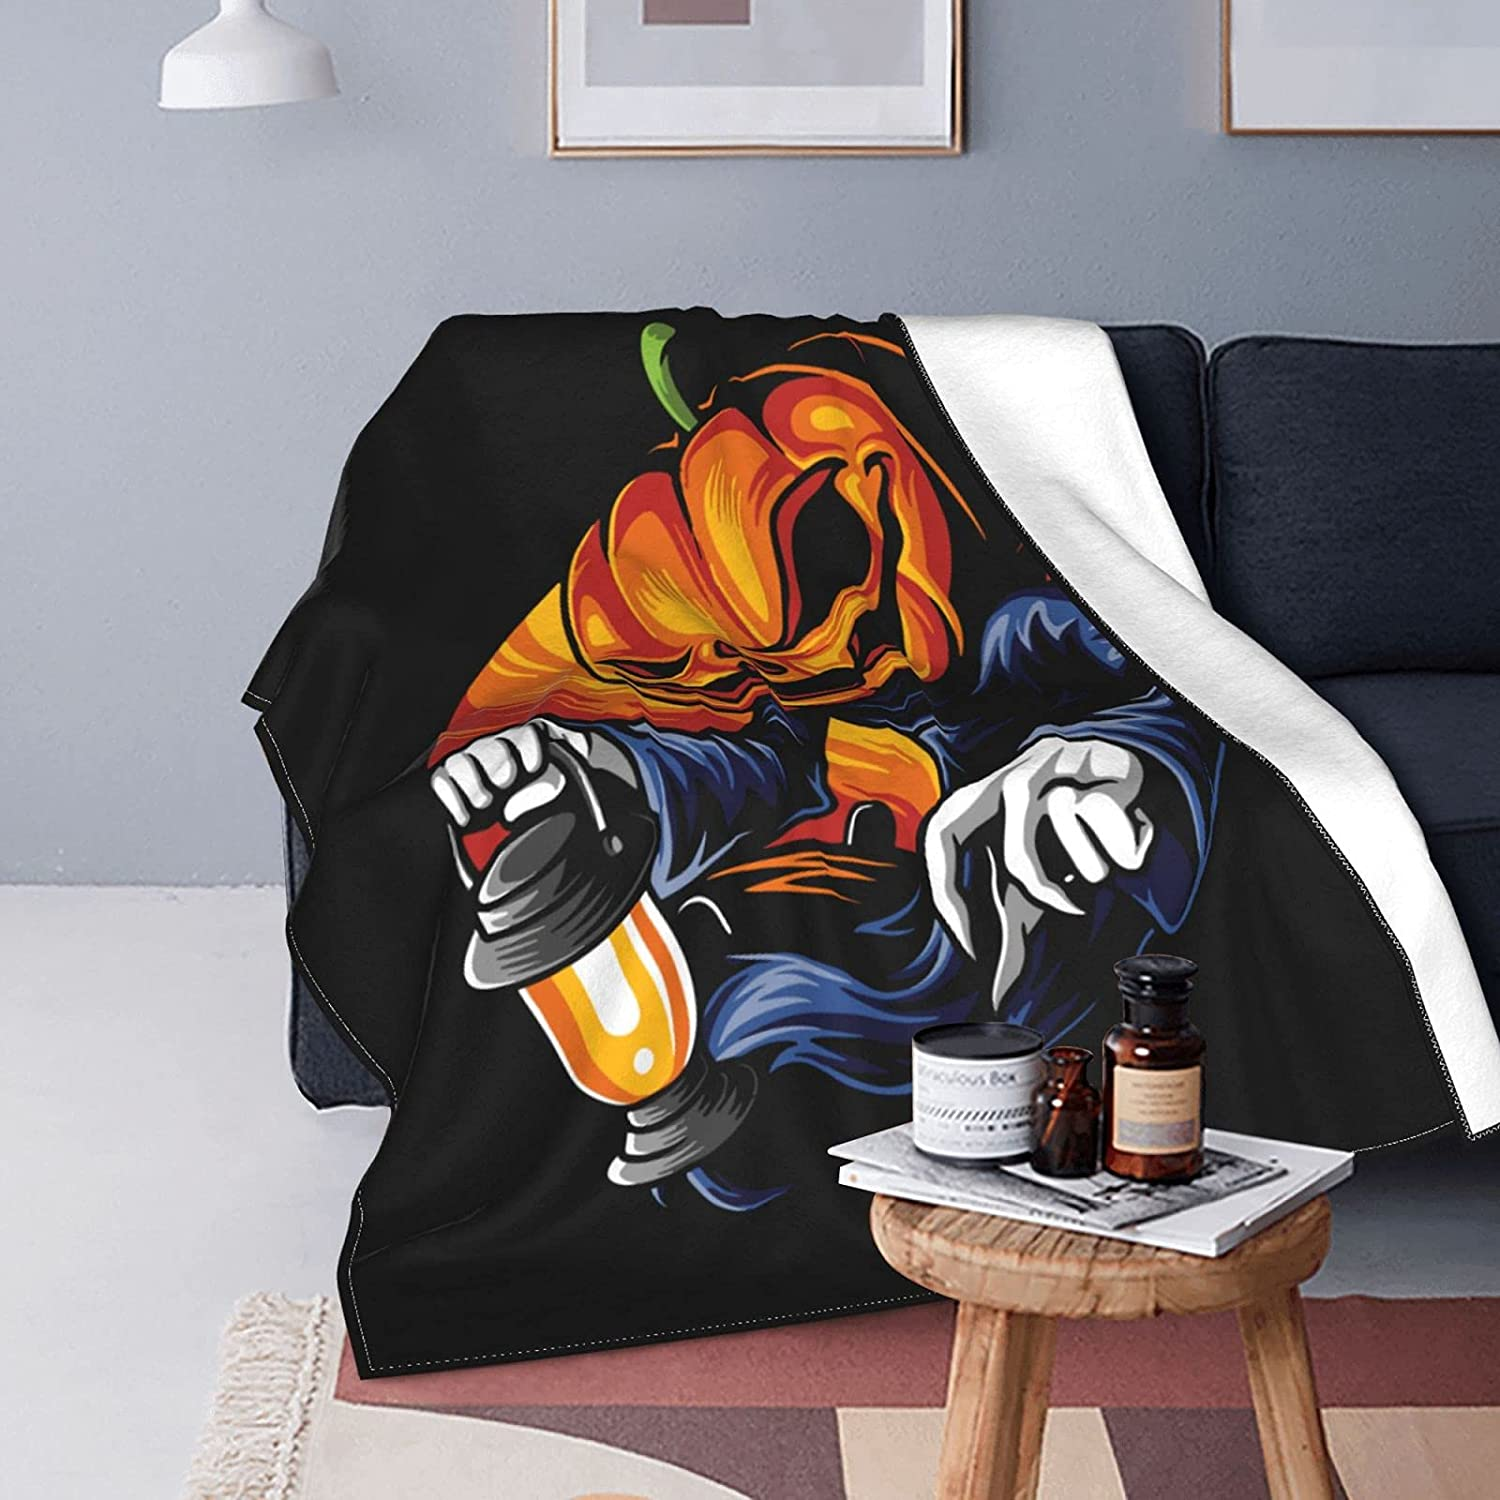 Soft Throw Blanket Halloween Max Max 89% OFF 57% OFF Ghost fo Pumpkin The Carrying Light